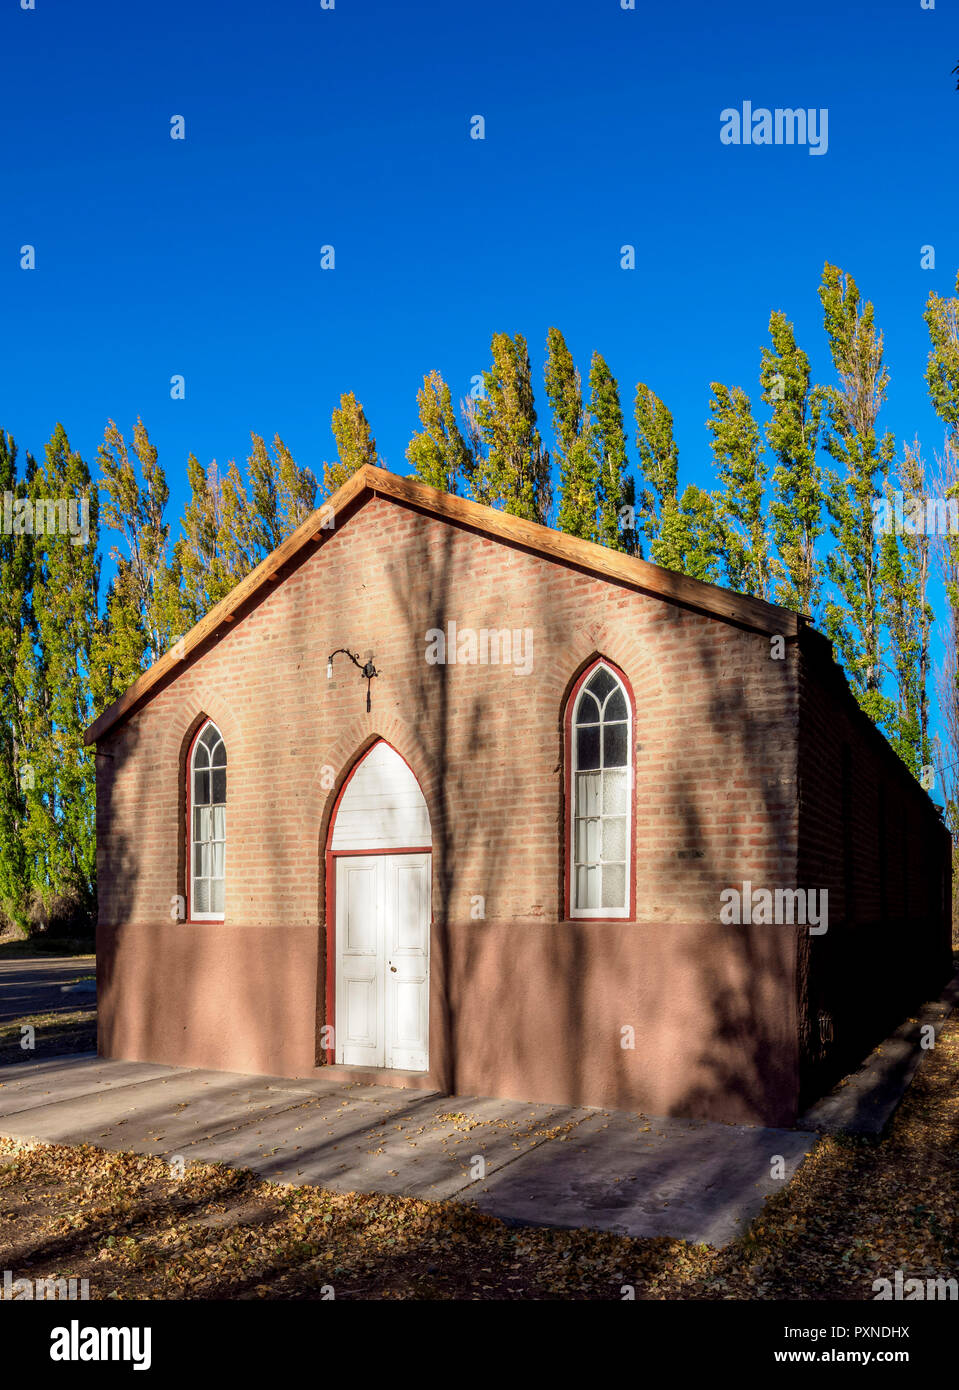 Old Bethel Chapel, Gaiman, The Welsh Settlement, Chubut Province, Patagonia, Argentina - Stock Image